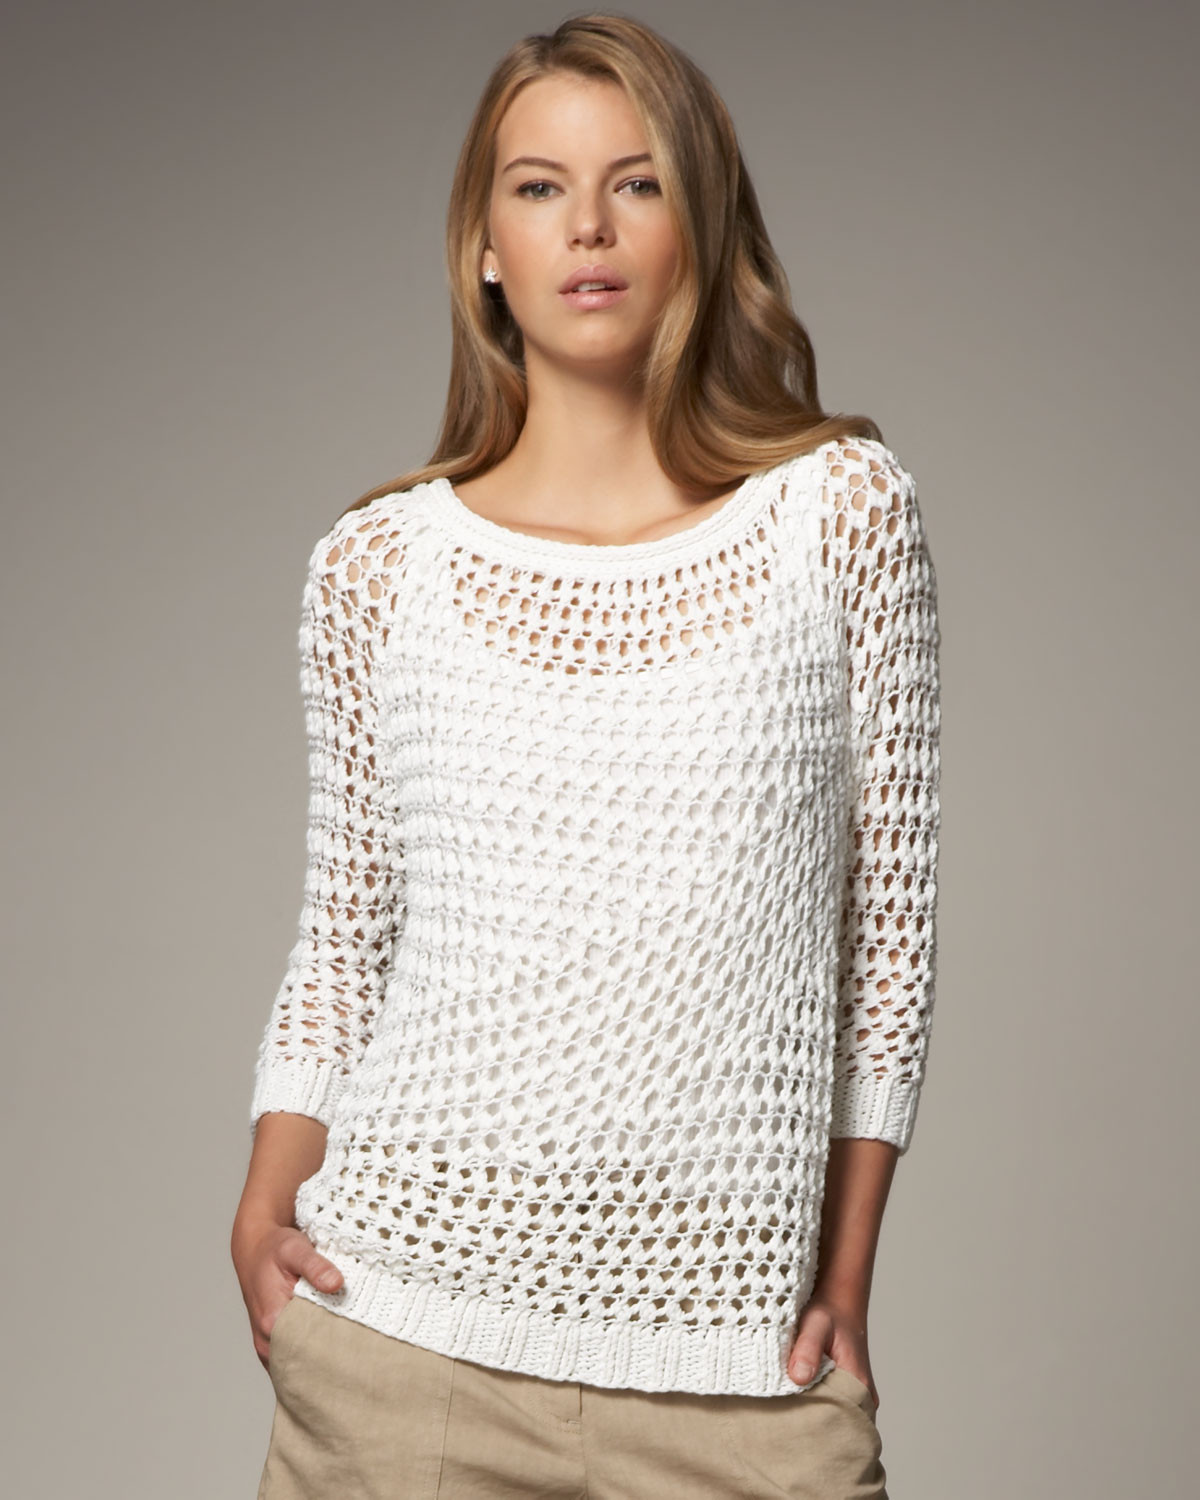 Unique White Crochet Sweater White Crochet Sweater Of Wonderful 44 Ideas White Crochet Sweater